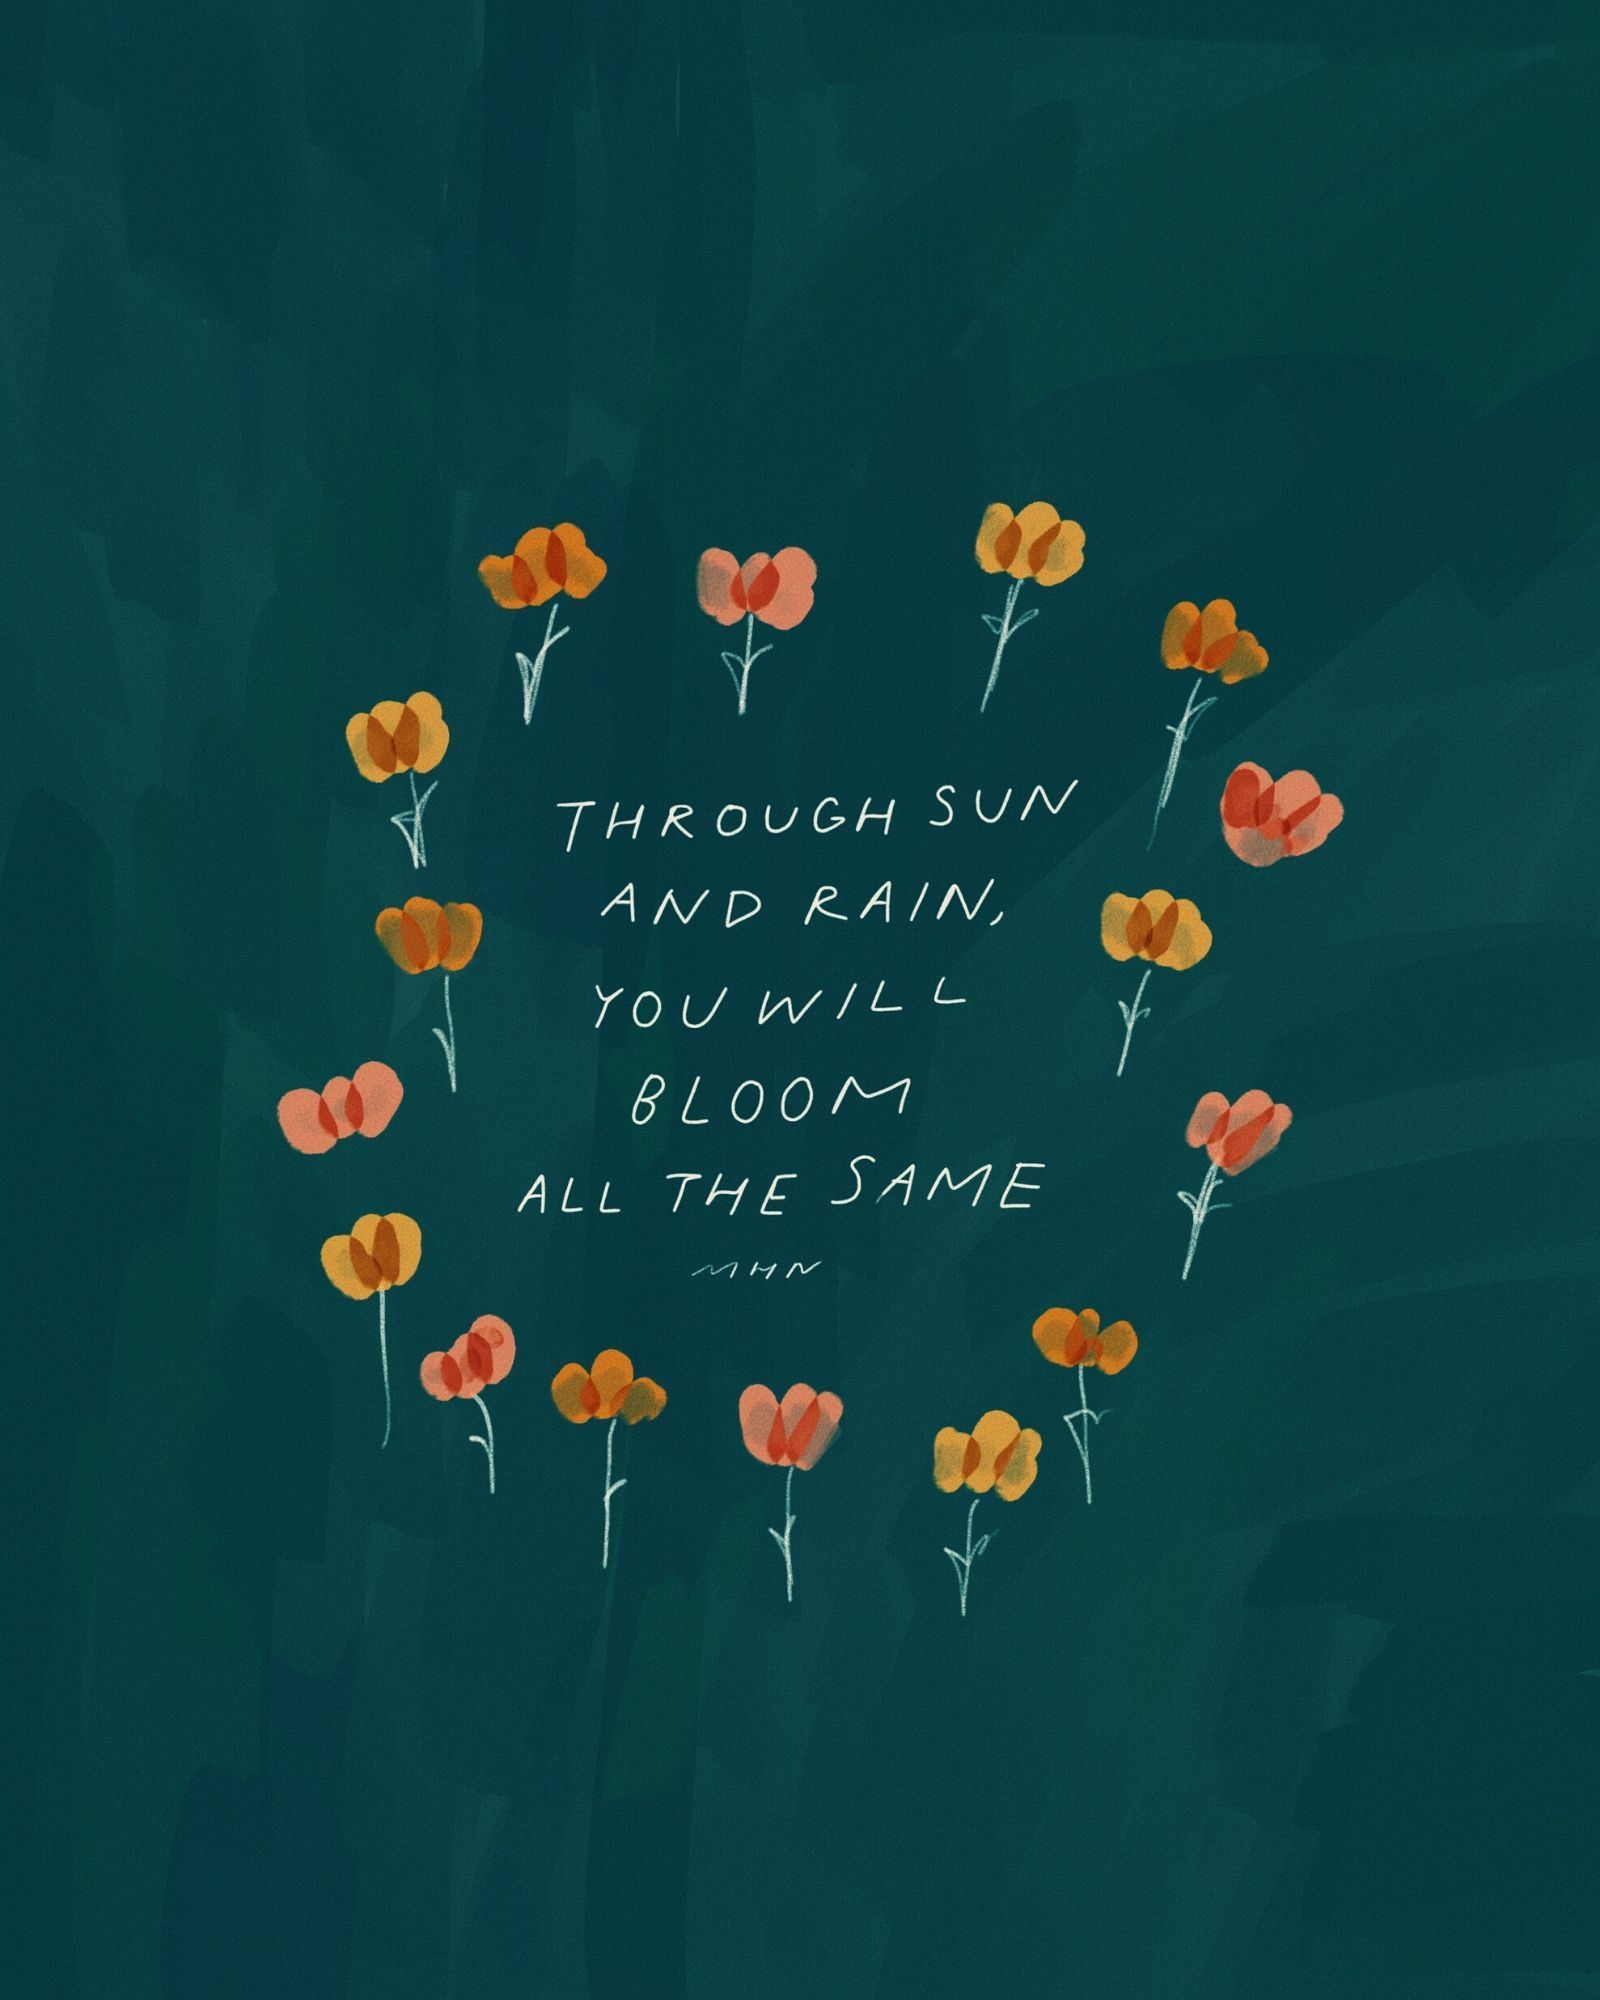 You will bloom.